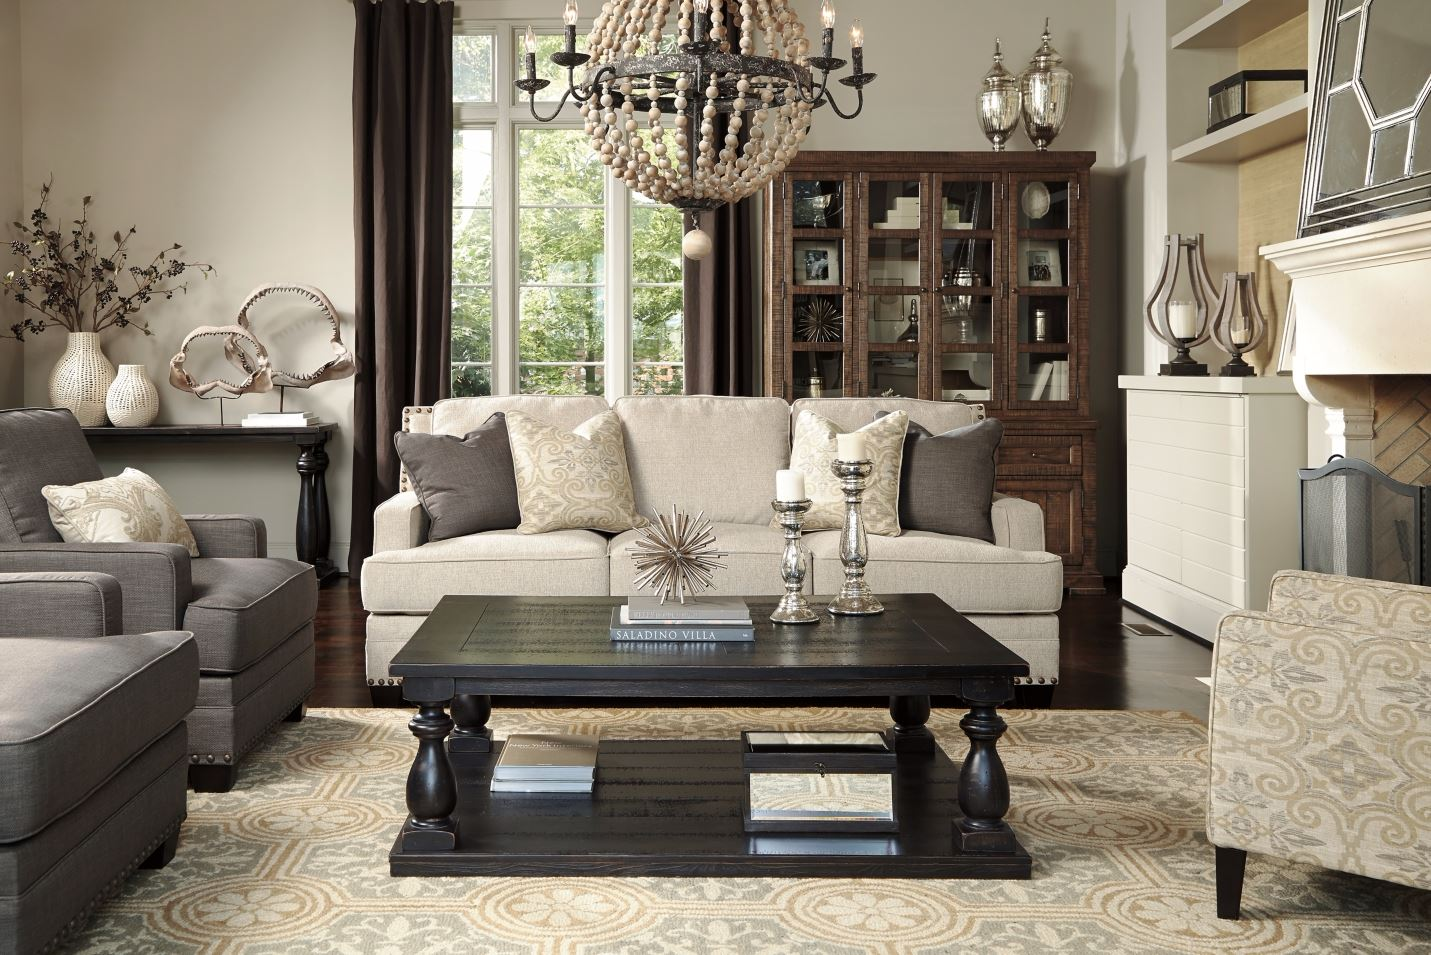 Beautiful Ashley Furniture Blog   Ashley Furniture HomeStore